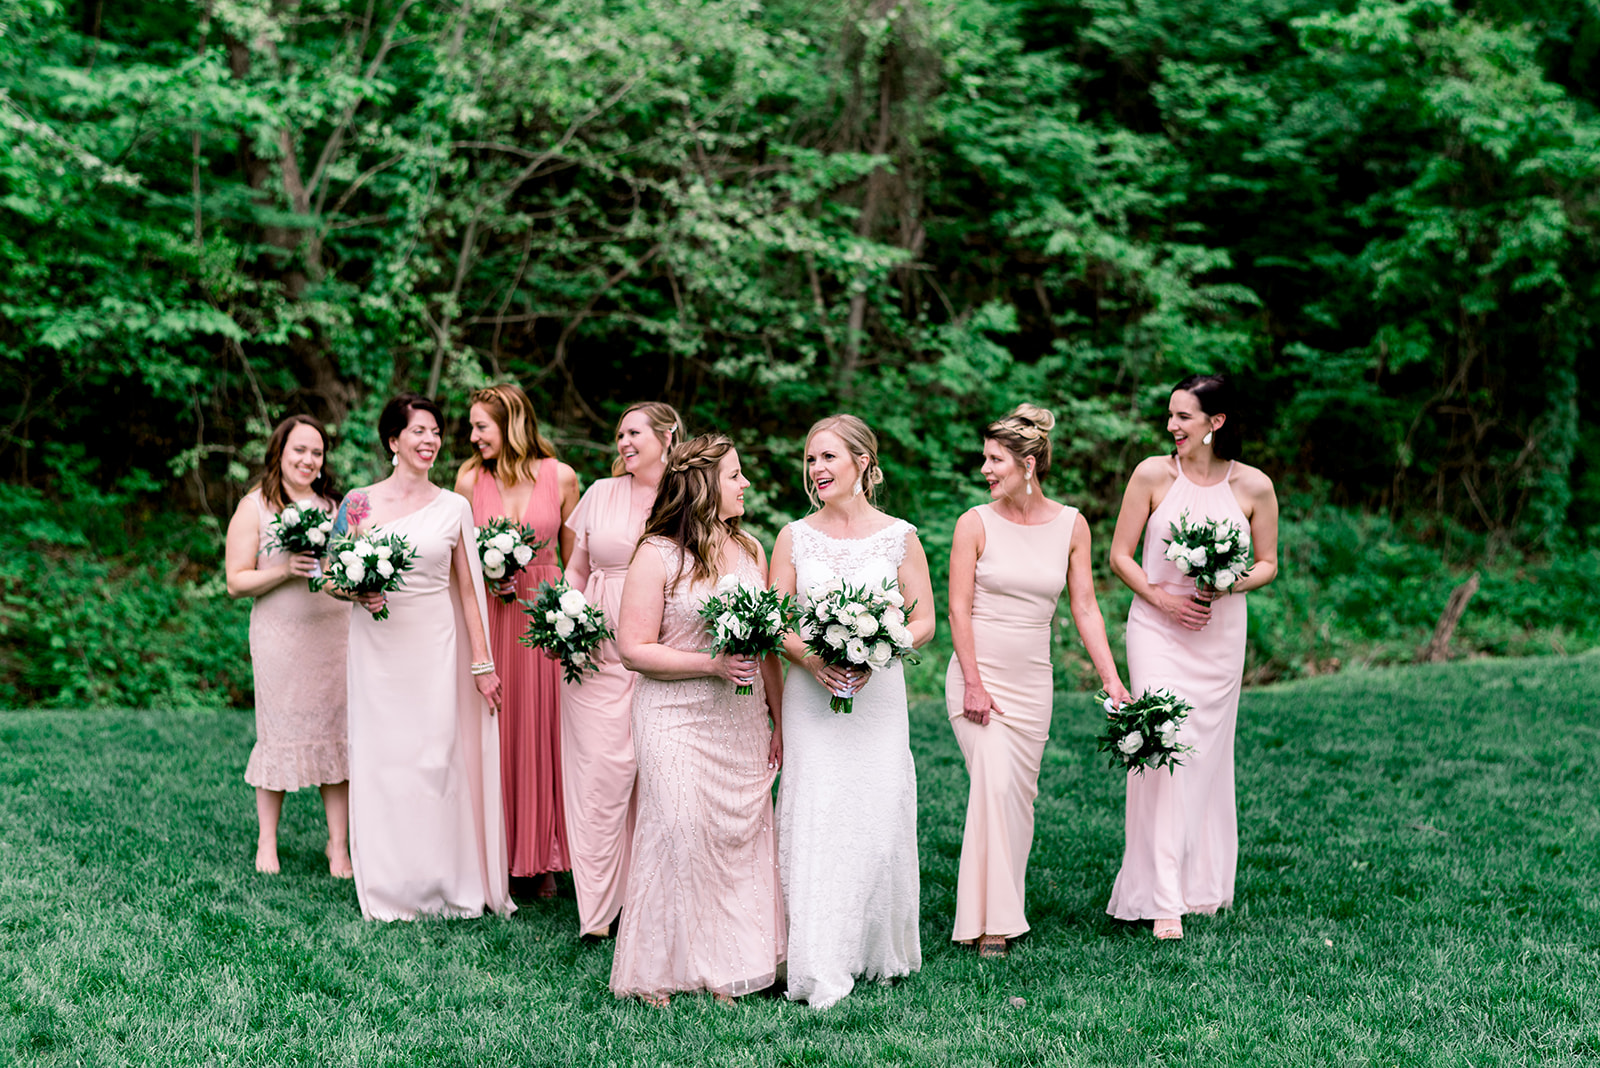 3._Zachary_+_Jennifer_-_Bridal_Party_-_Emily_Burney_-_021.jpg